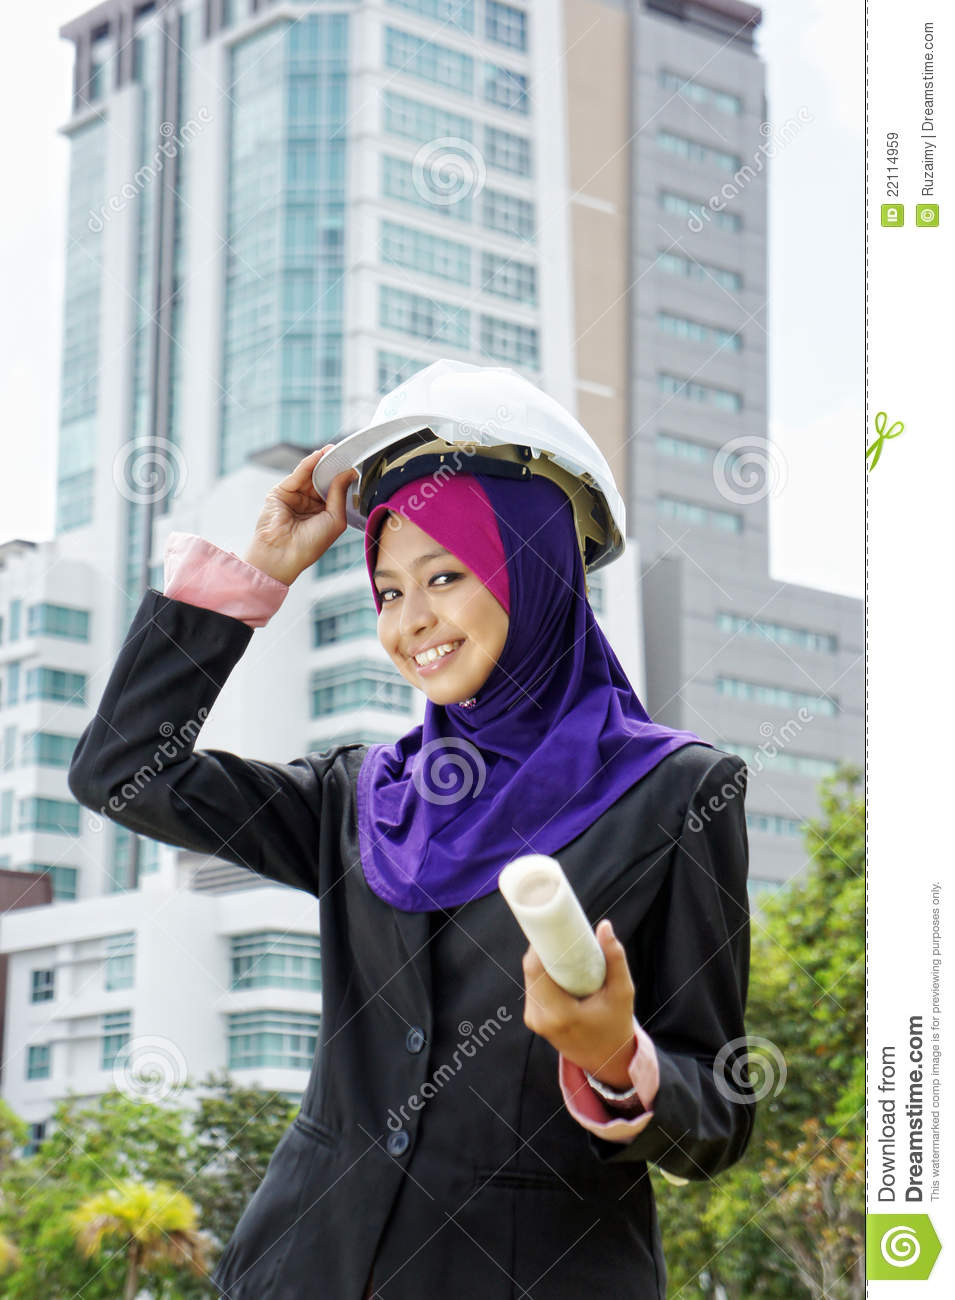 lansing muslim women dating site 100% free muslim singles many sites claim to be free but hit you with surprise charges after you join connectingsingles is a 100% free muslim singles site, with all features.